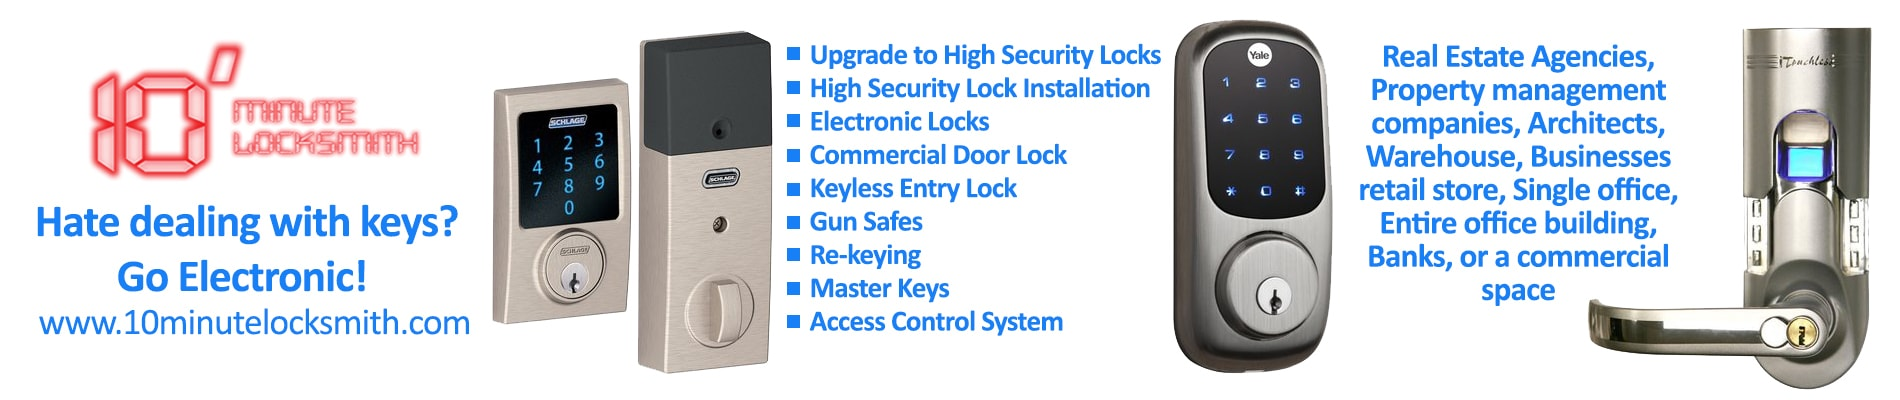 Replacing Electronic Locks Service